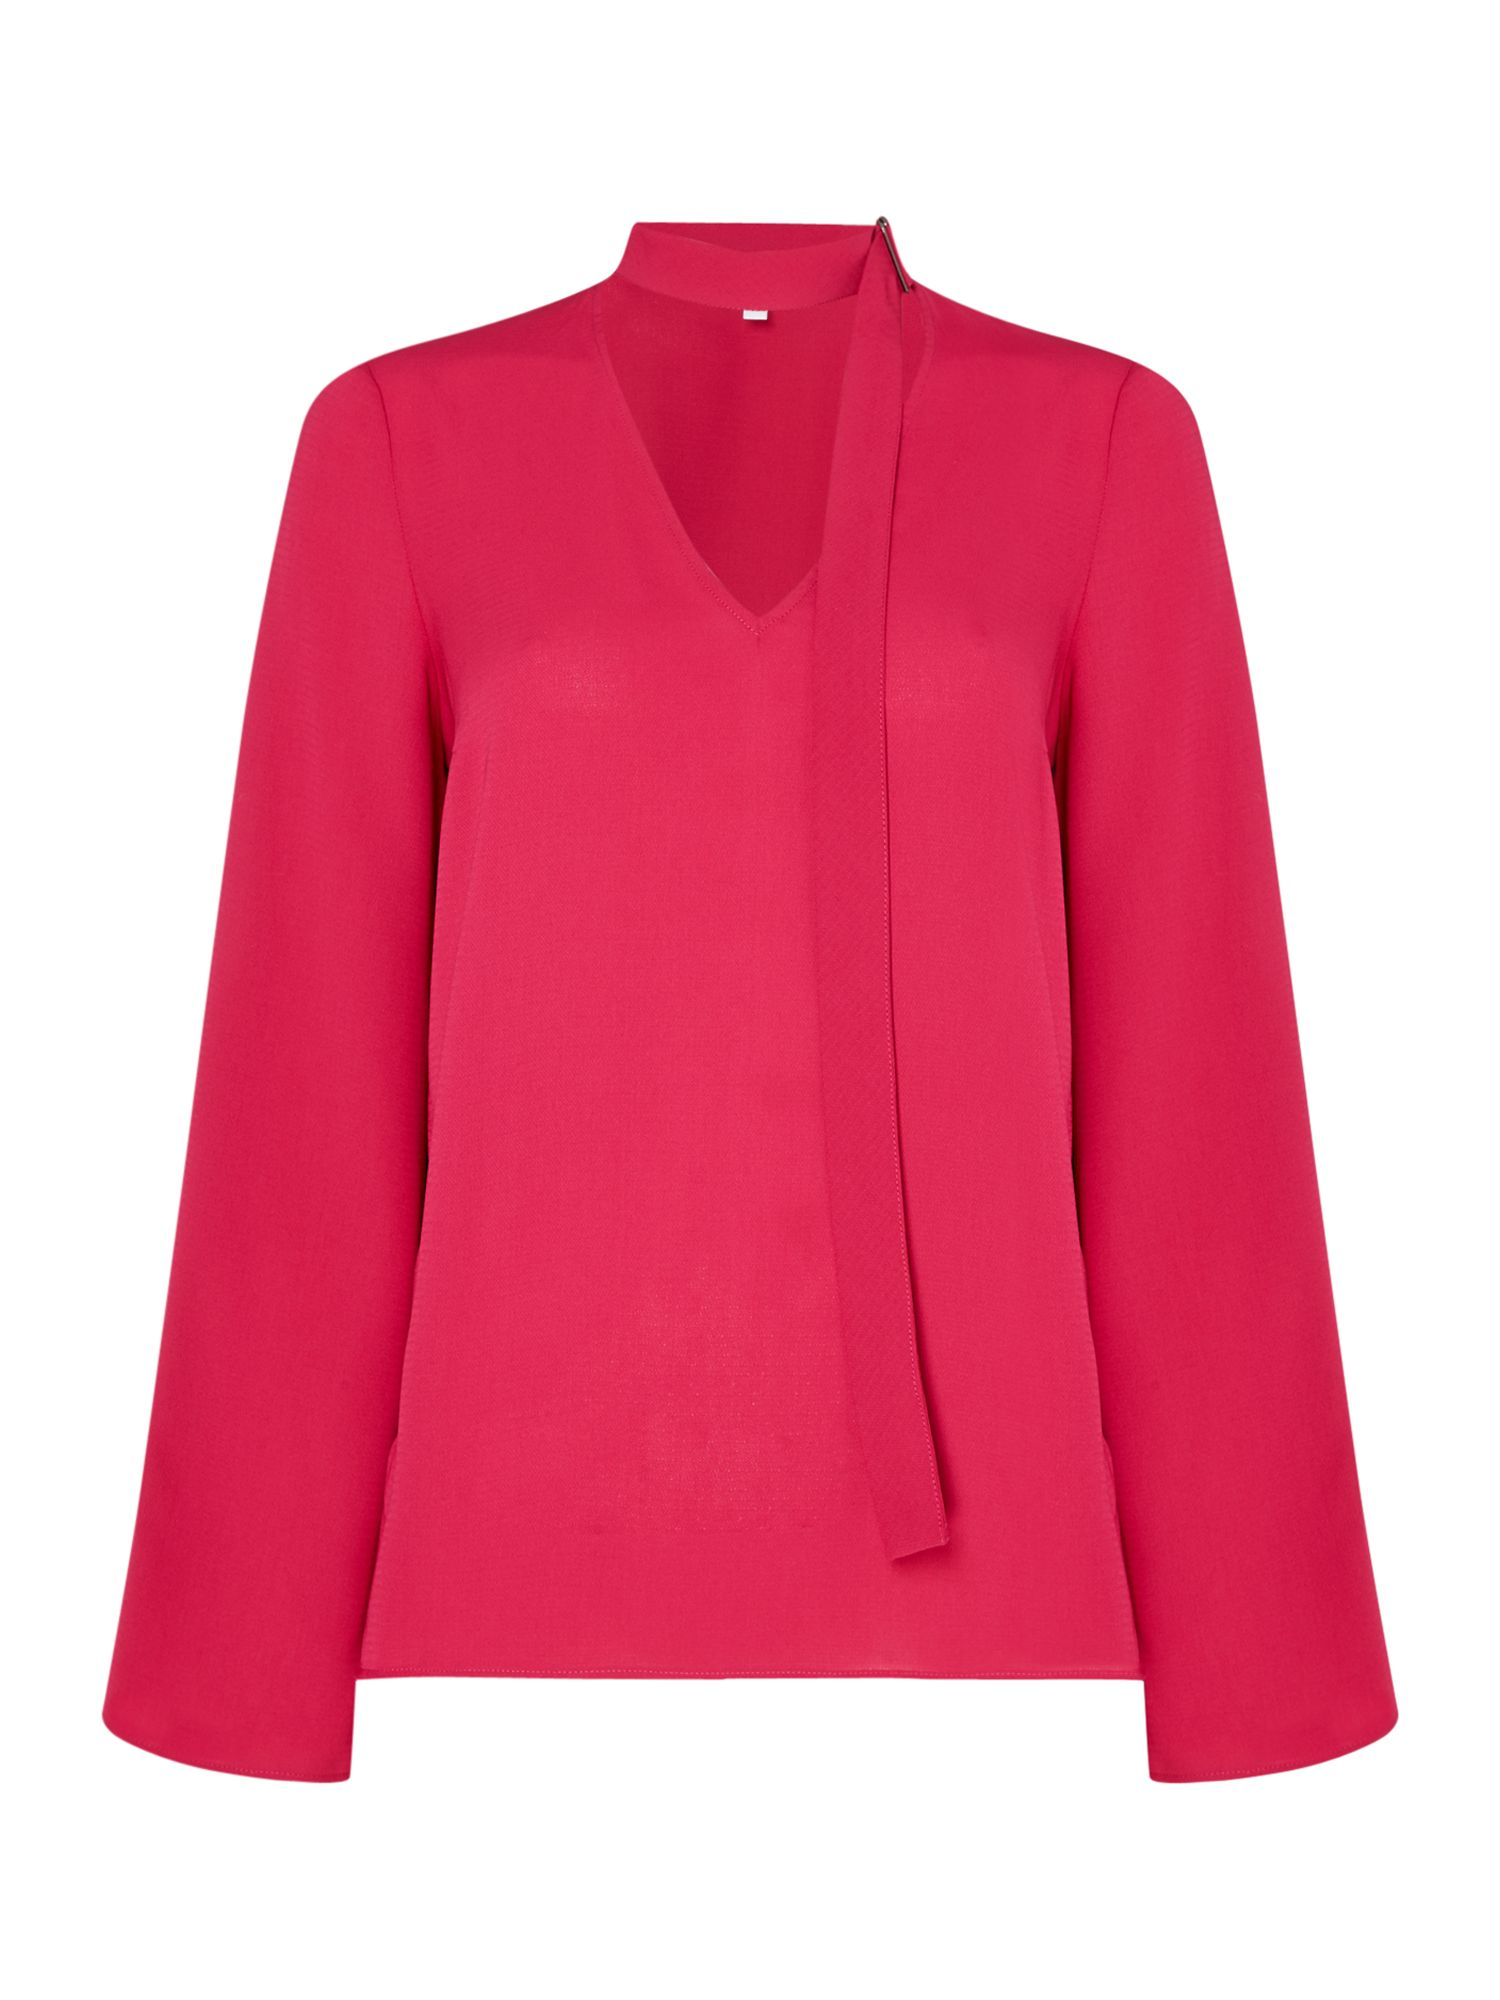 Linea Bel d ring blouse, Raspberry